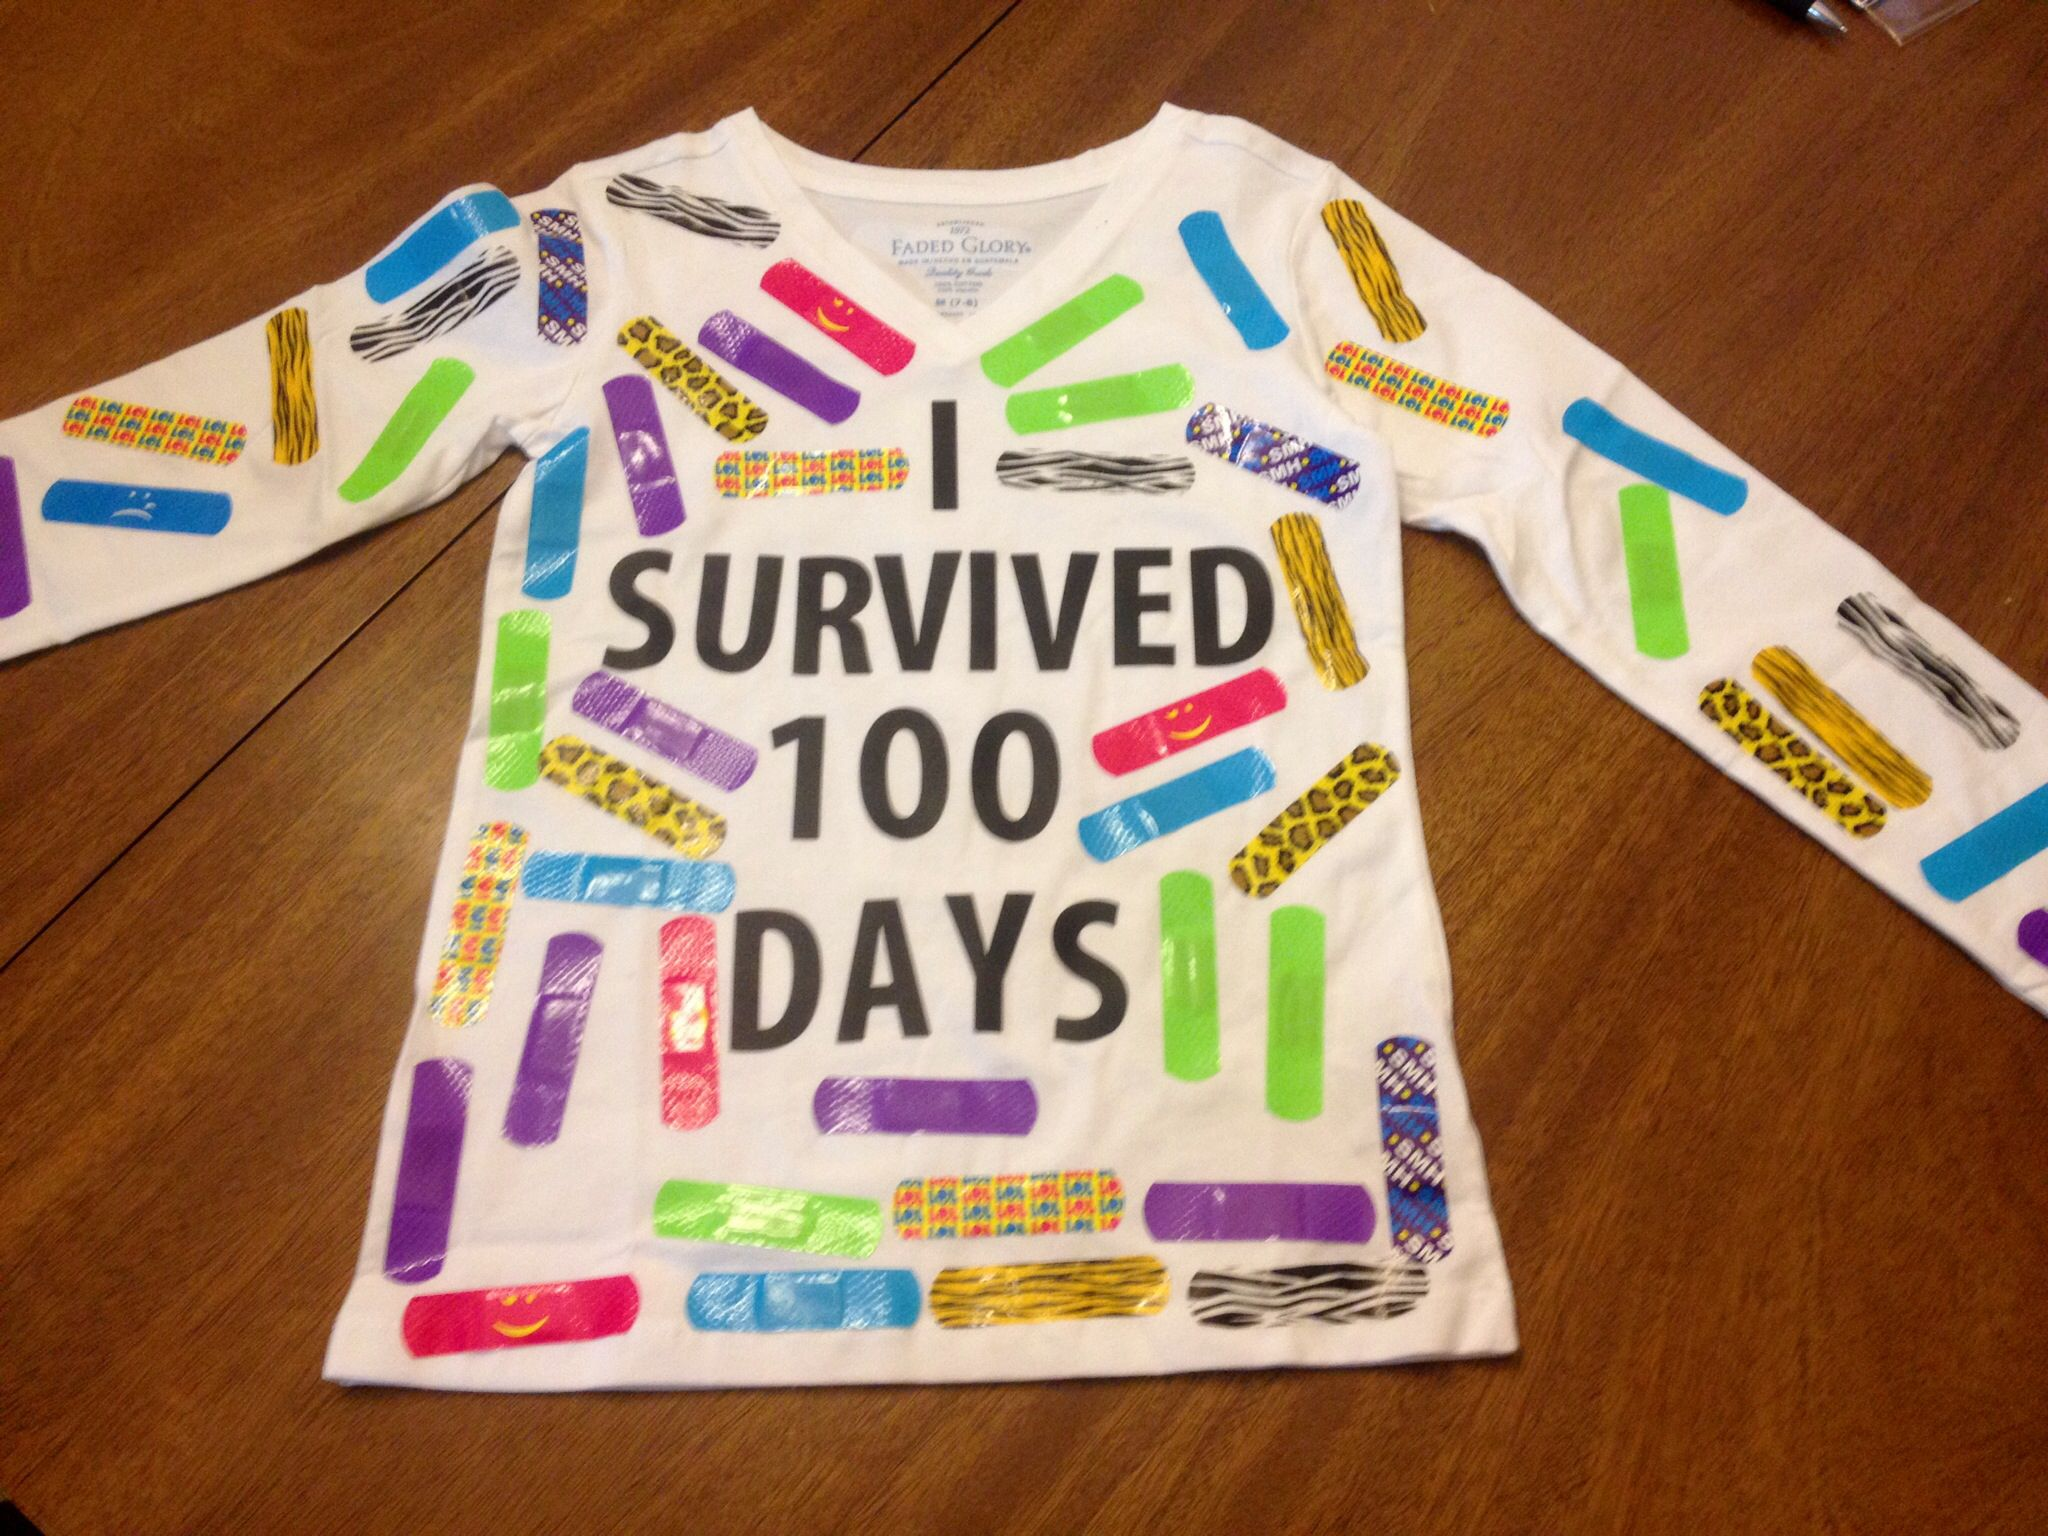 letters 100 days of school tshirt with 100 colorful band aids used vinyl peel and stick